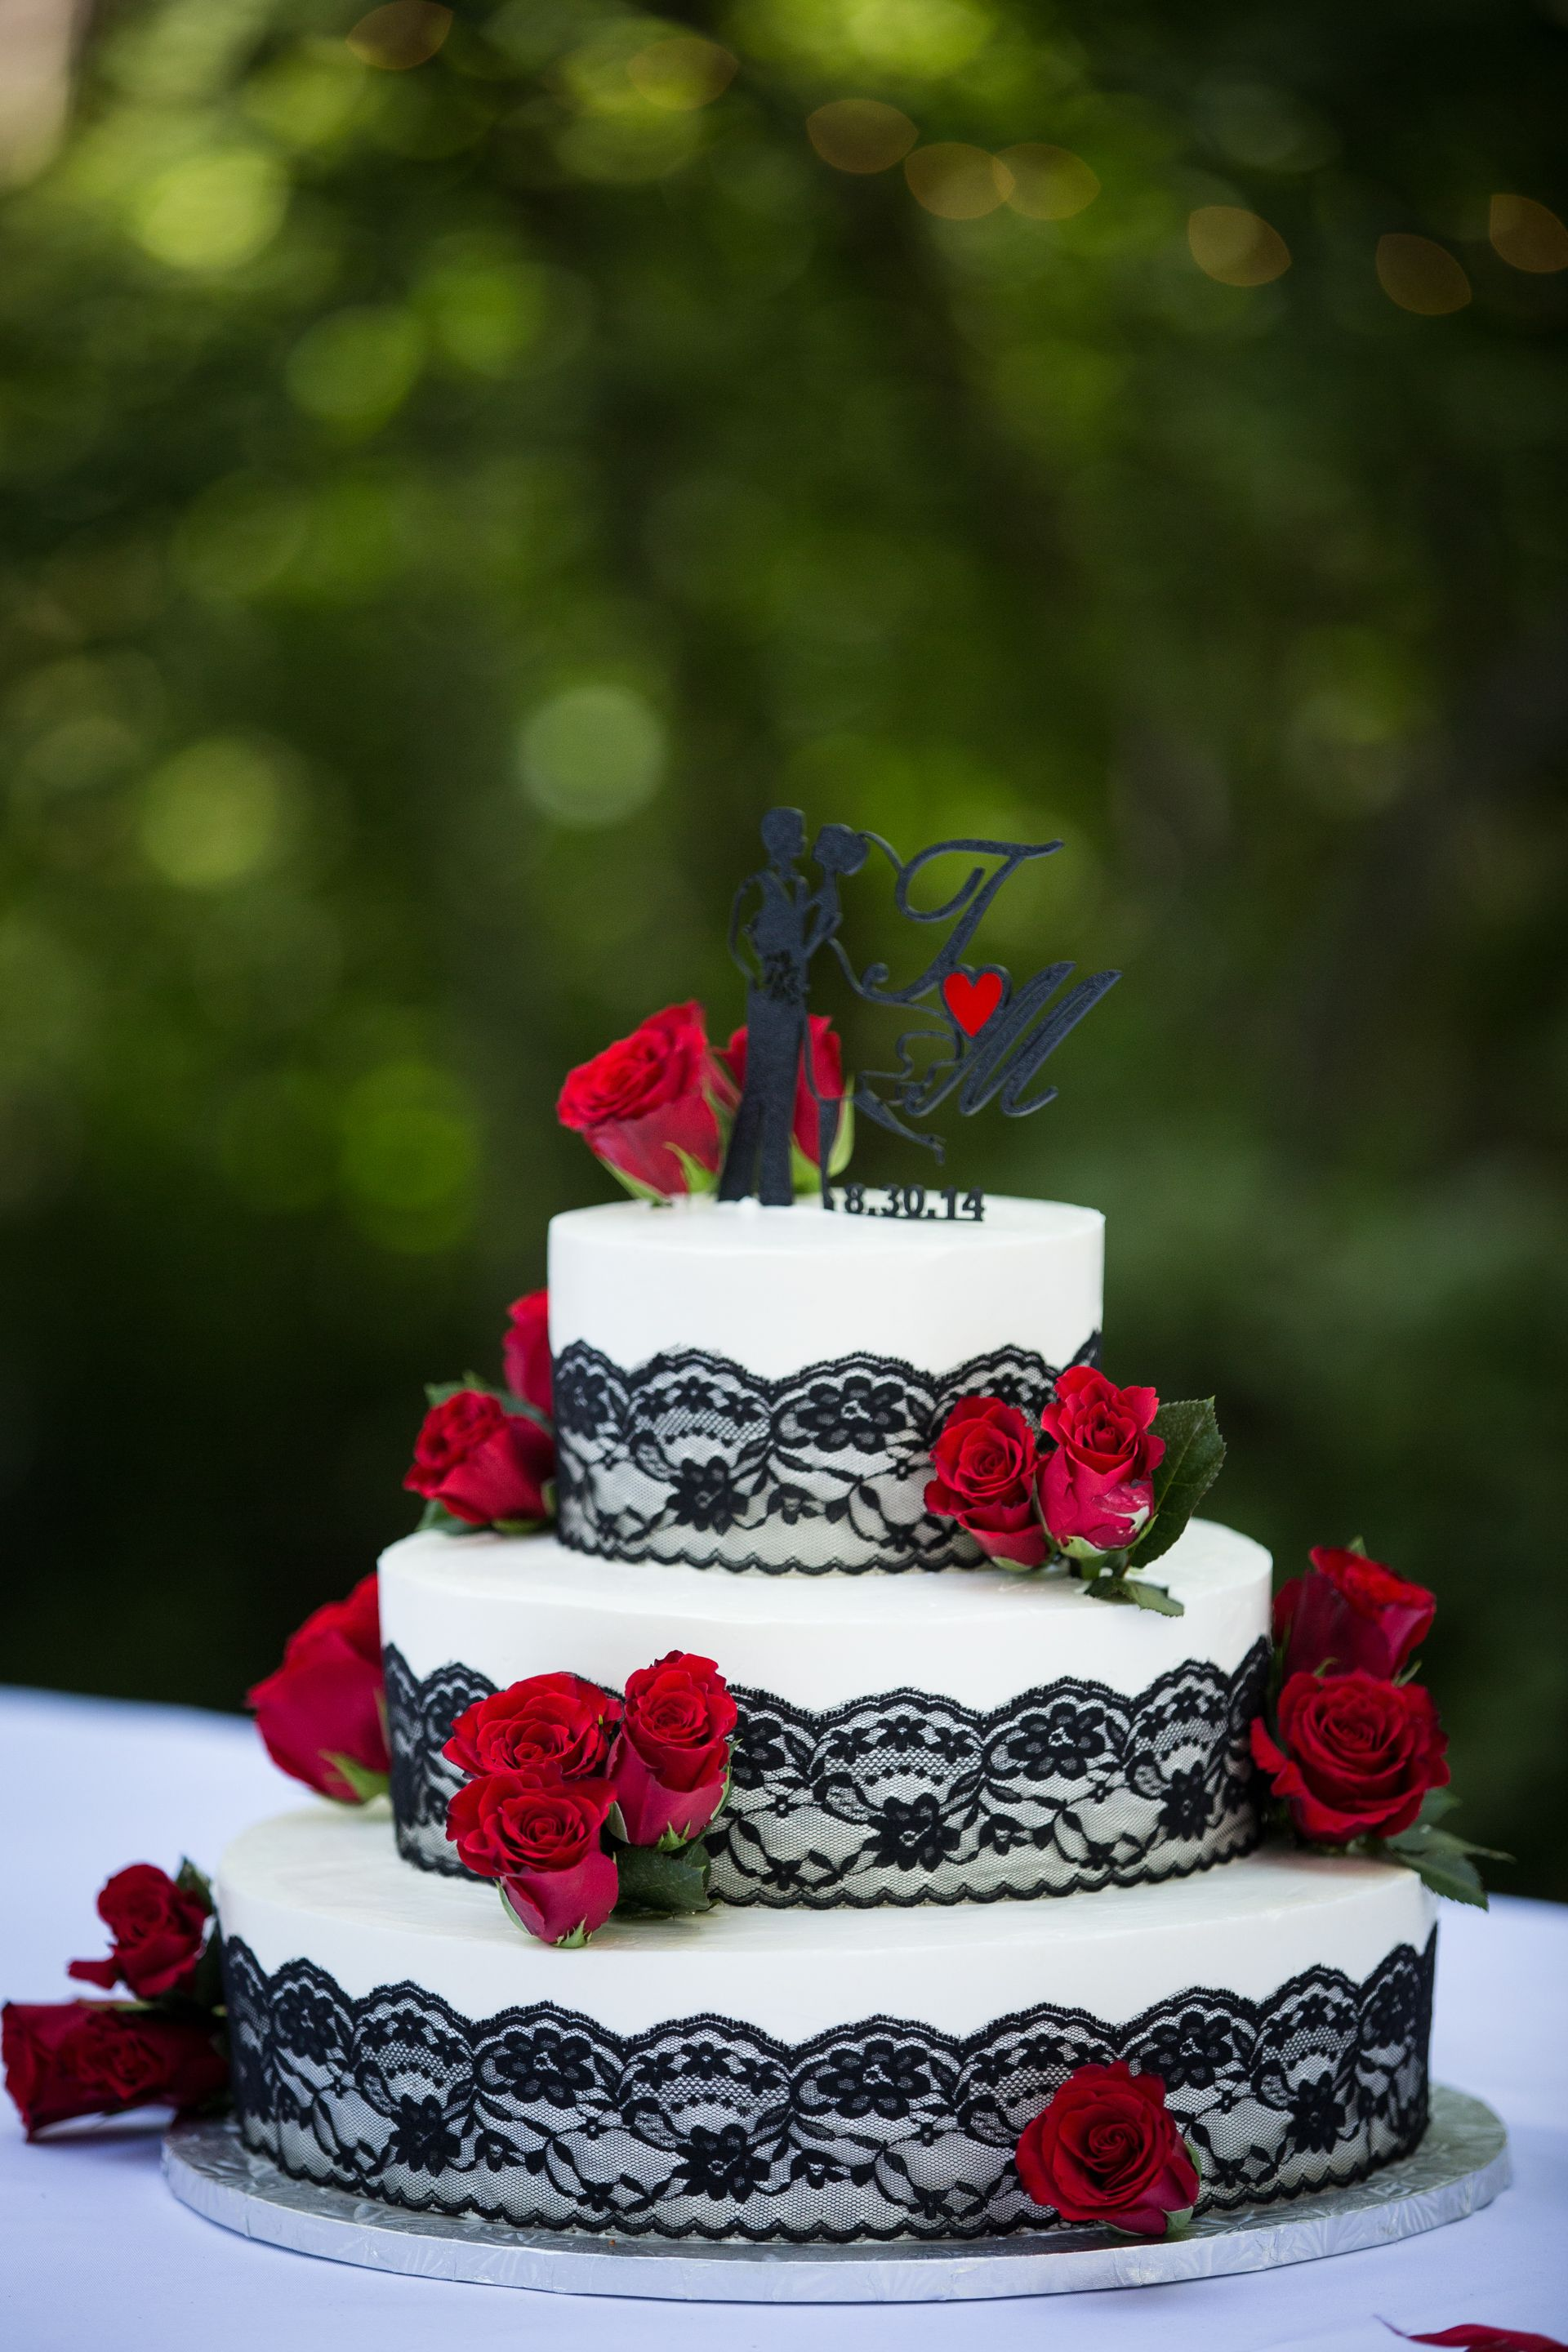 Black Lace Red Rose Wedding Cake | Wedding Cakes - Final Options ...